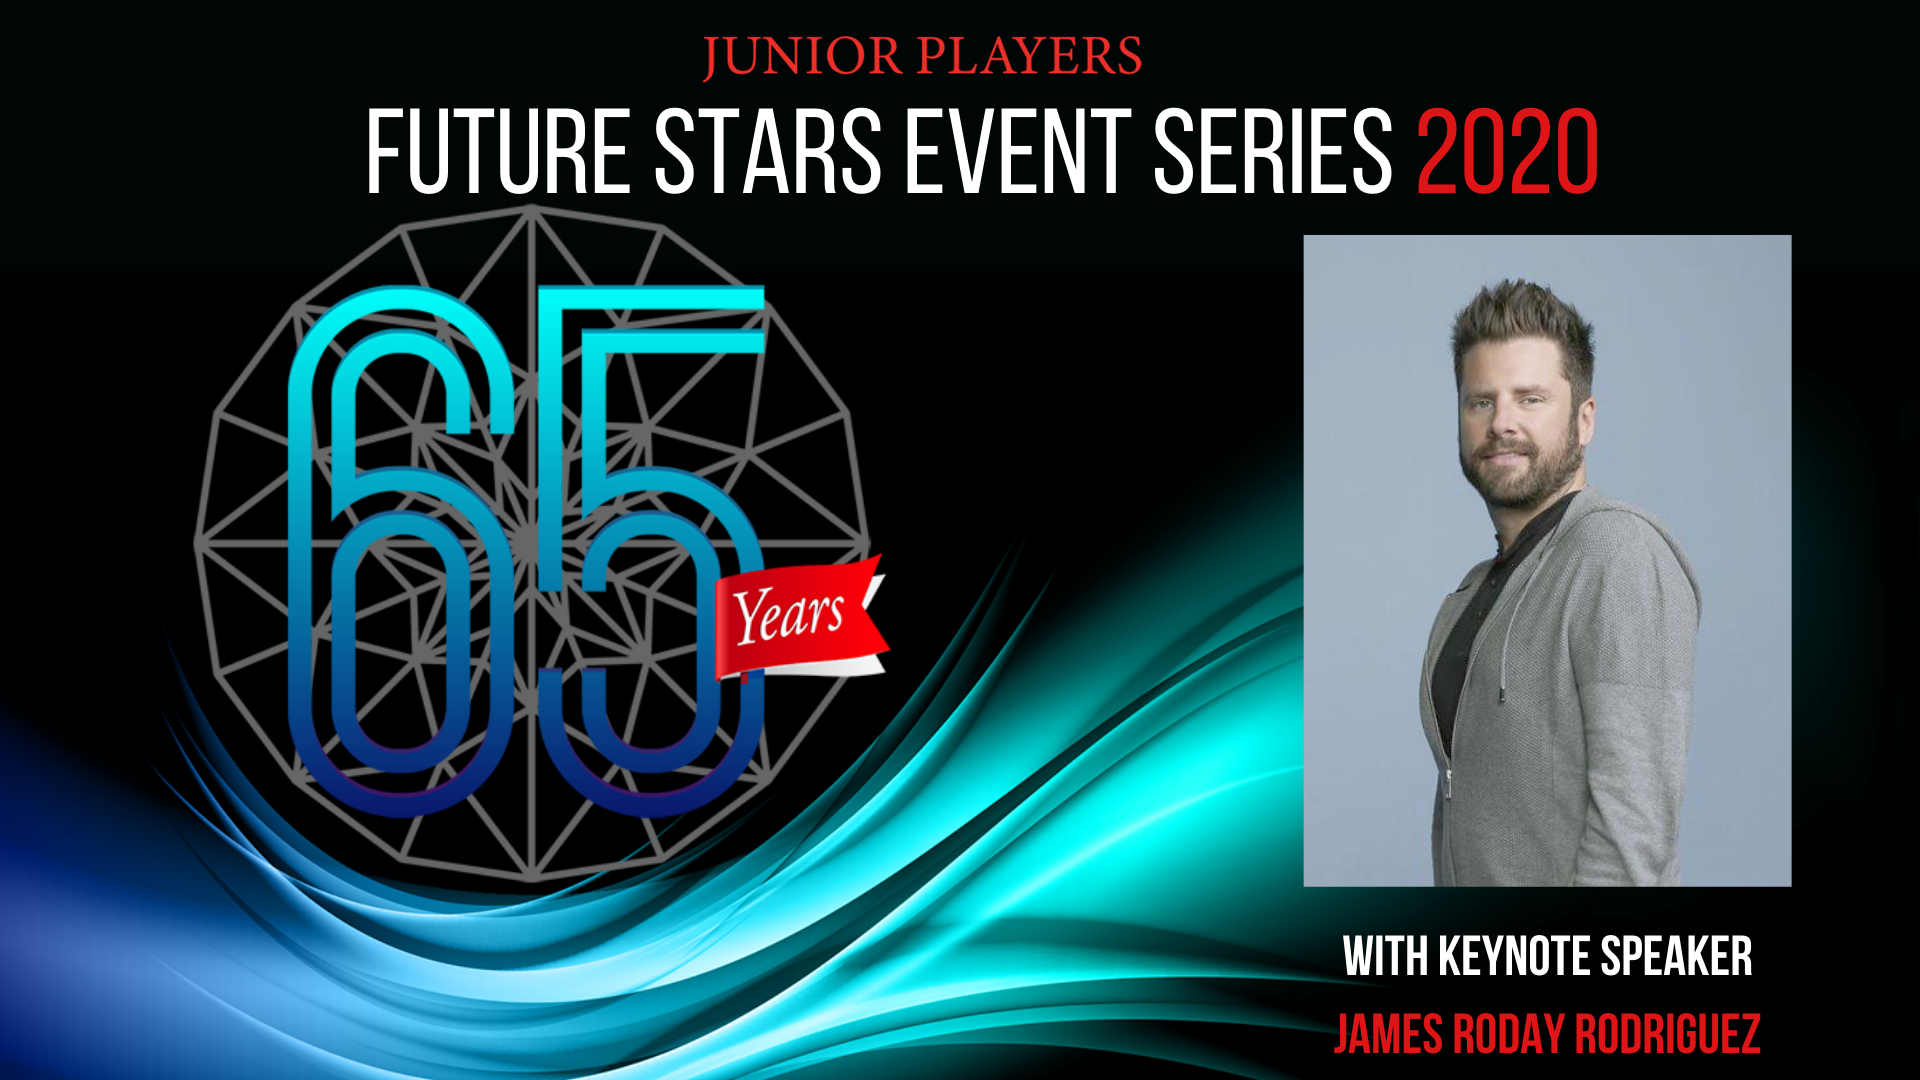 Future Stars Event Series Featuring Keynote Speaker James Roday Rodriguez